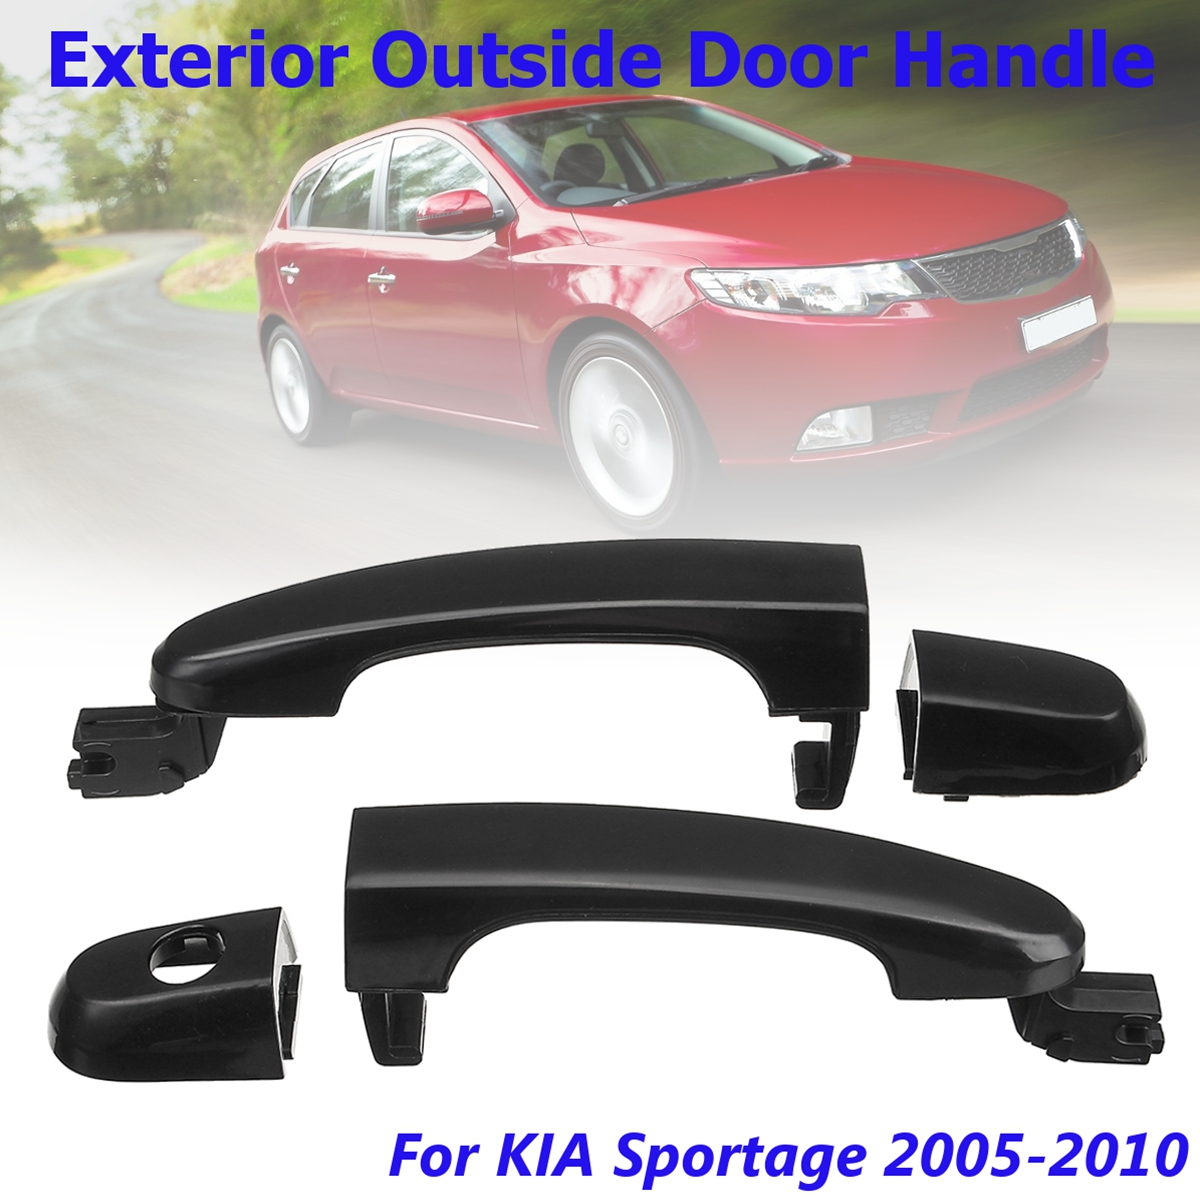 High Quality New font b Exterior b font Outside Door Handle for KIA Sportage 2005 2006